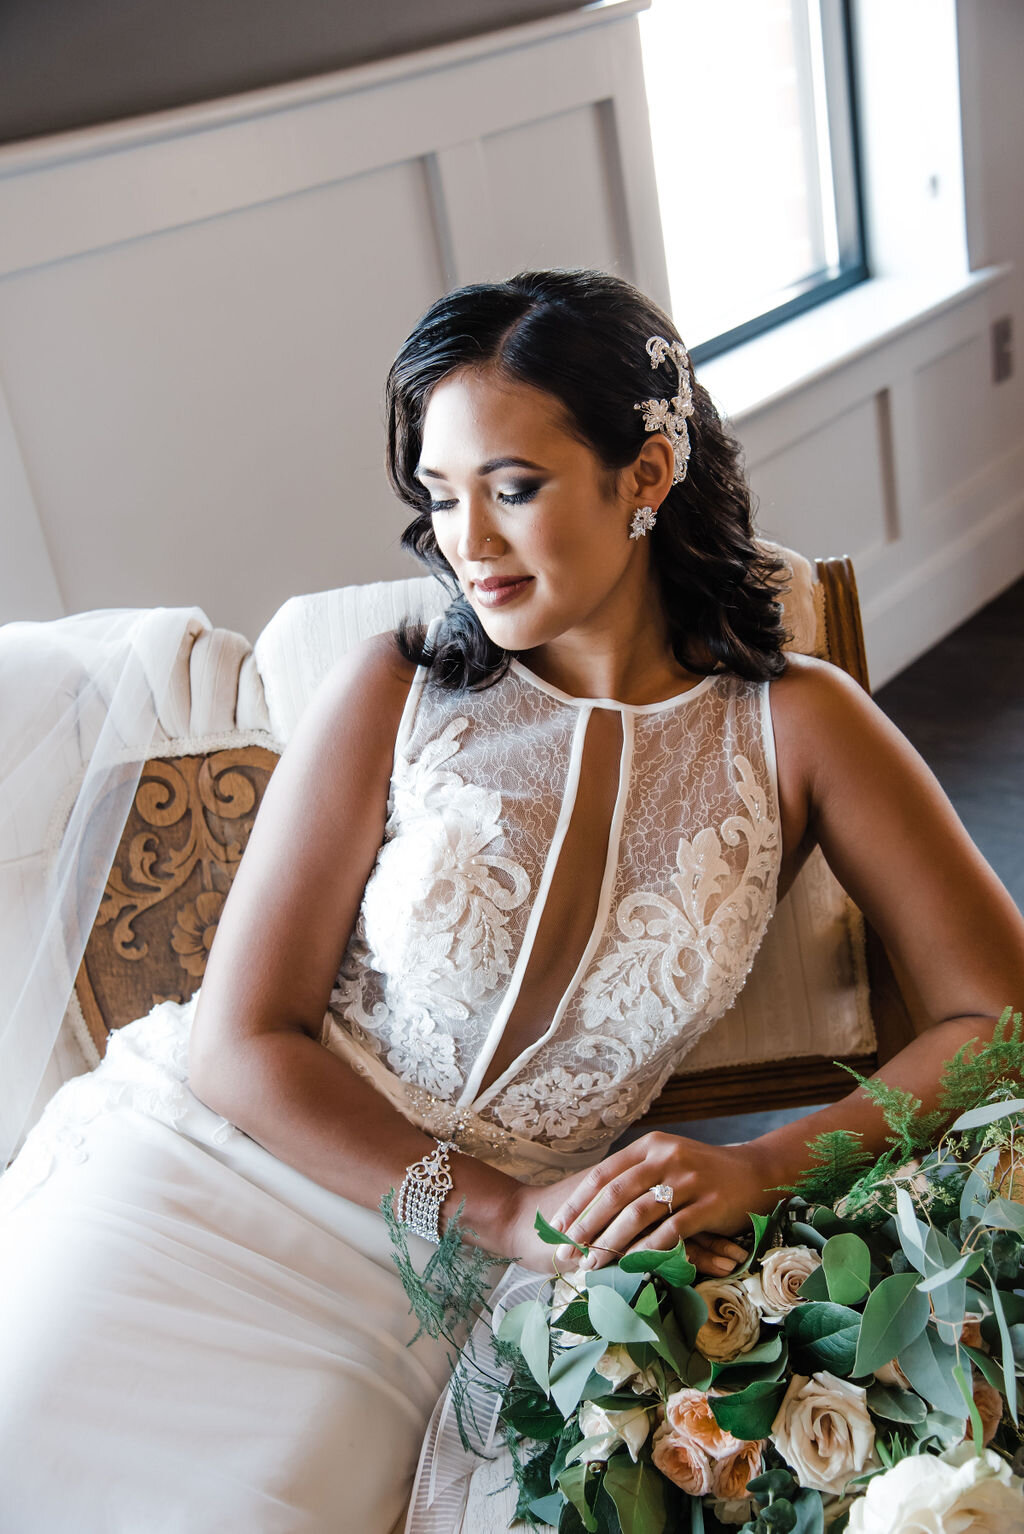 bride rests on vintage French settee, with carved wooden design on back of seat, with lace and satin wedding gown. Wedding bouquet sits next to bride with blush, apricot, and cream colored roses.